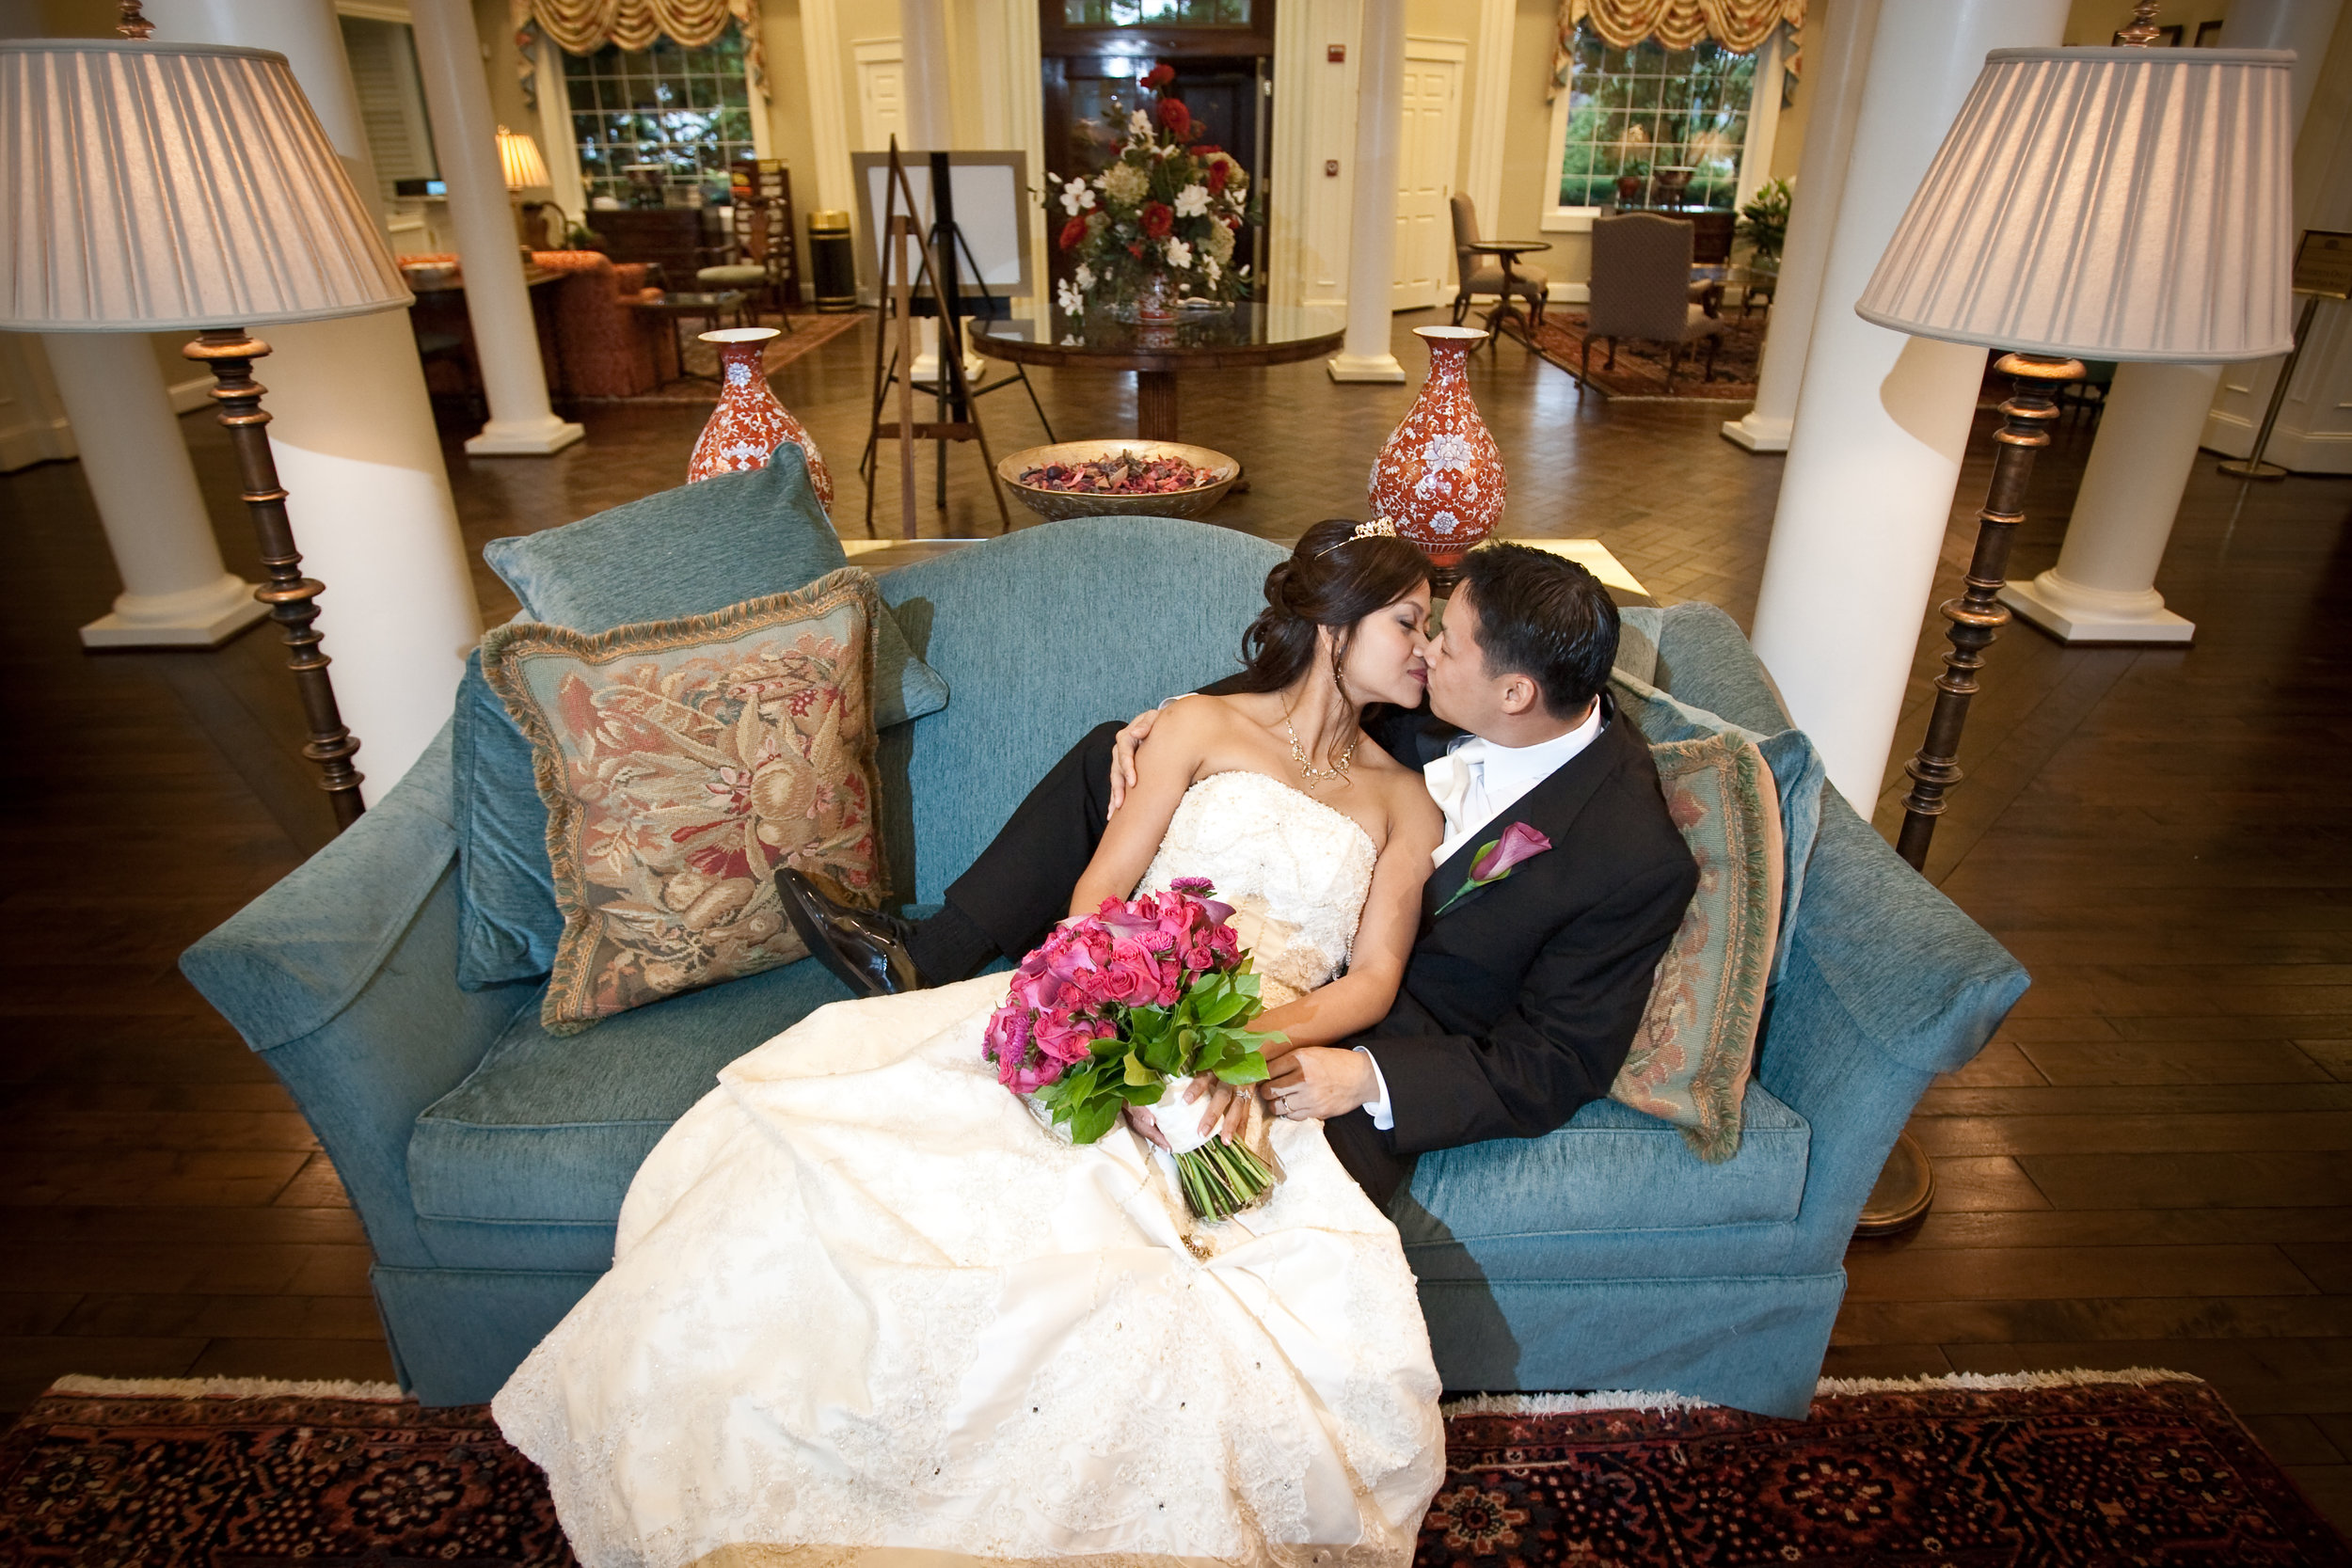 - Photos by E Jung The Total Wedding Service